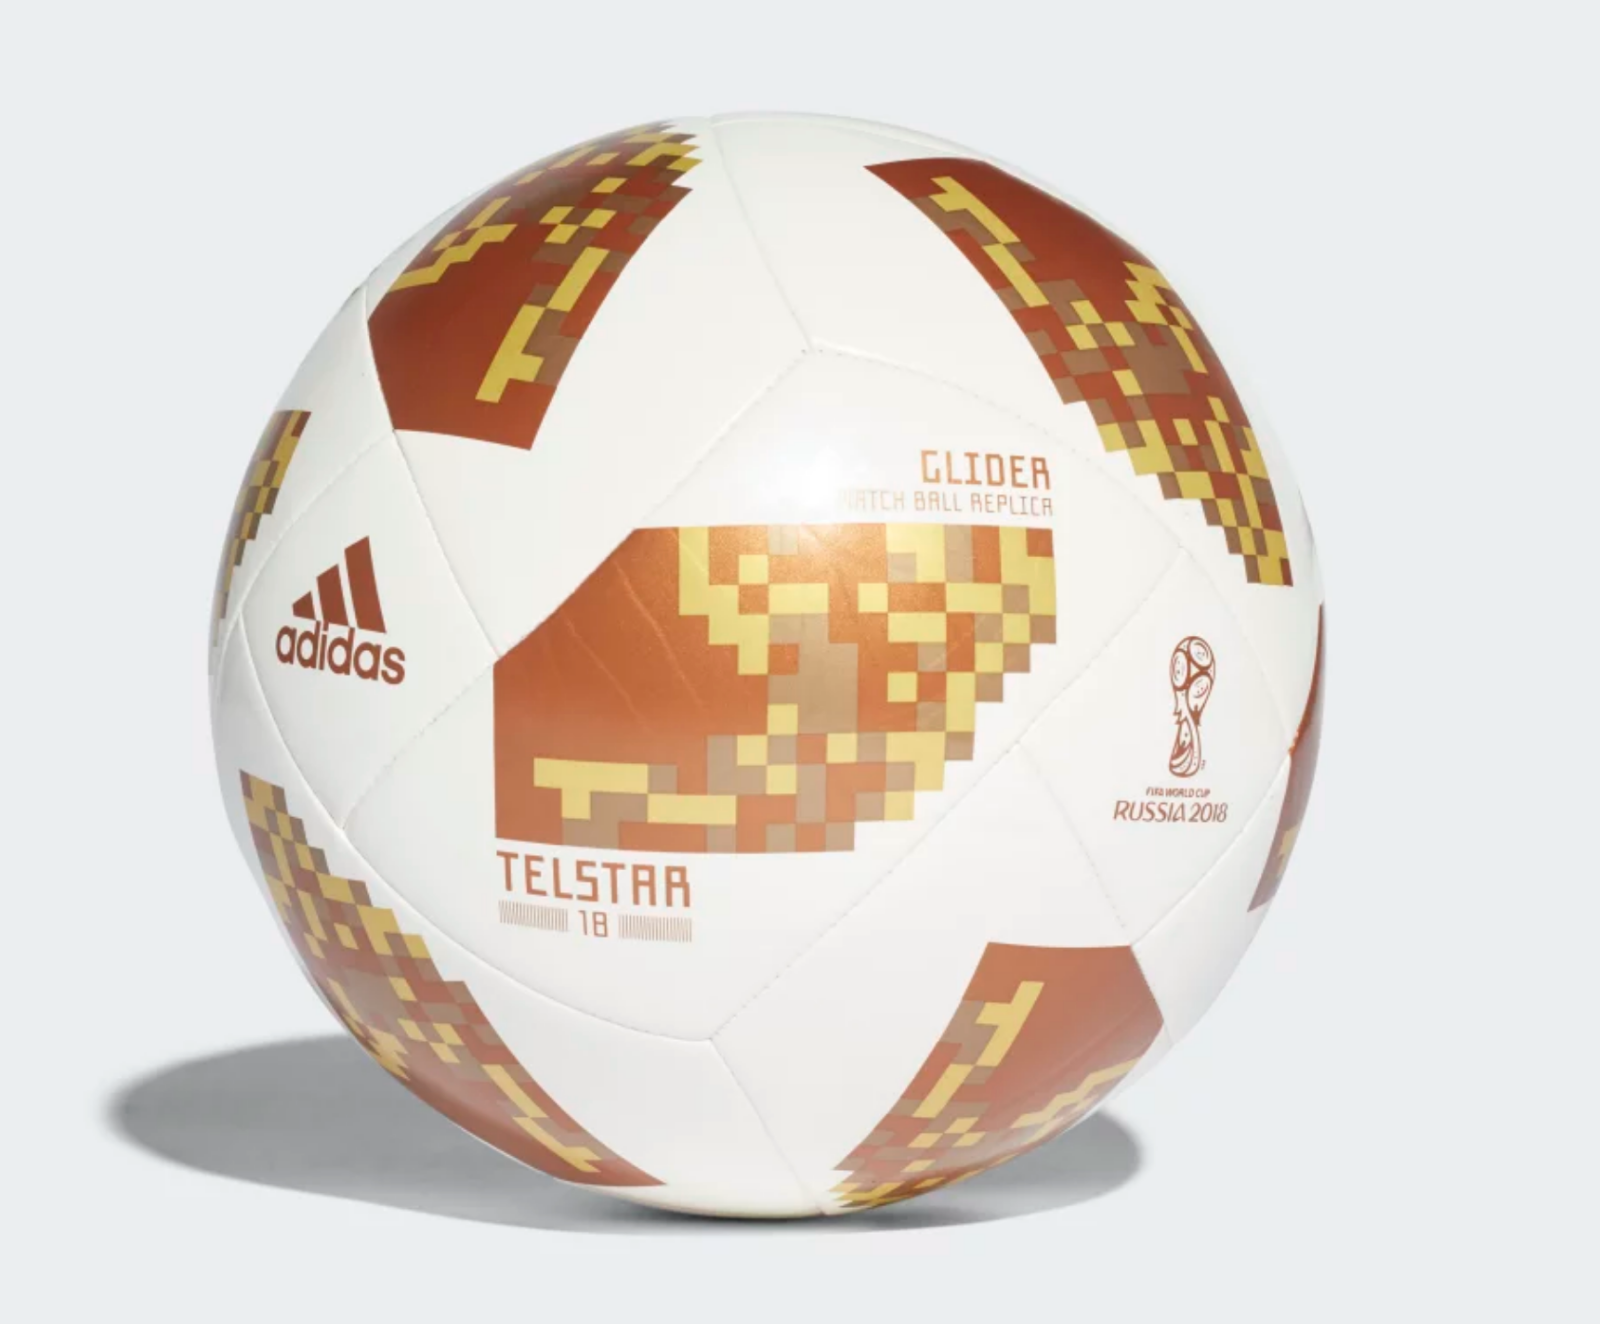 NEW Adidas White Cooper Gold 2018 FIFA World Cup Glider Soccer Ball  Discount Price 21.99 Free Shipping Buy it Now 1919628b0